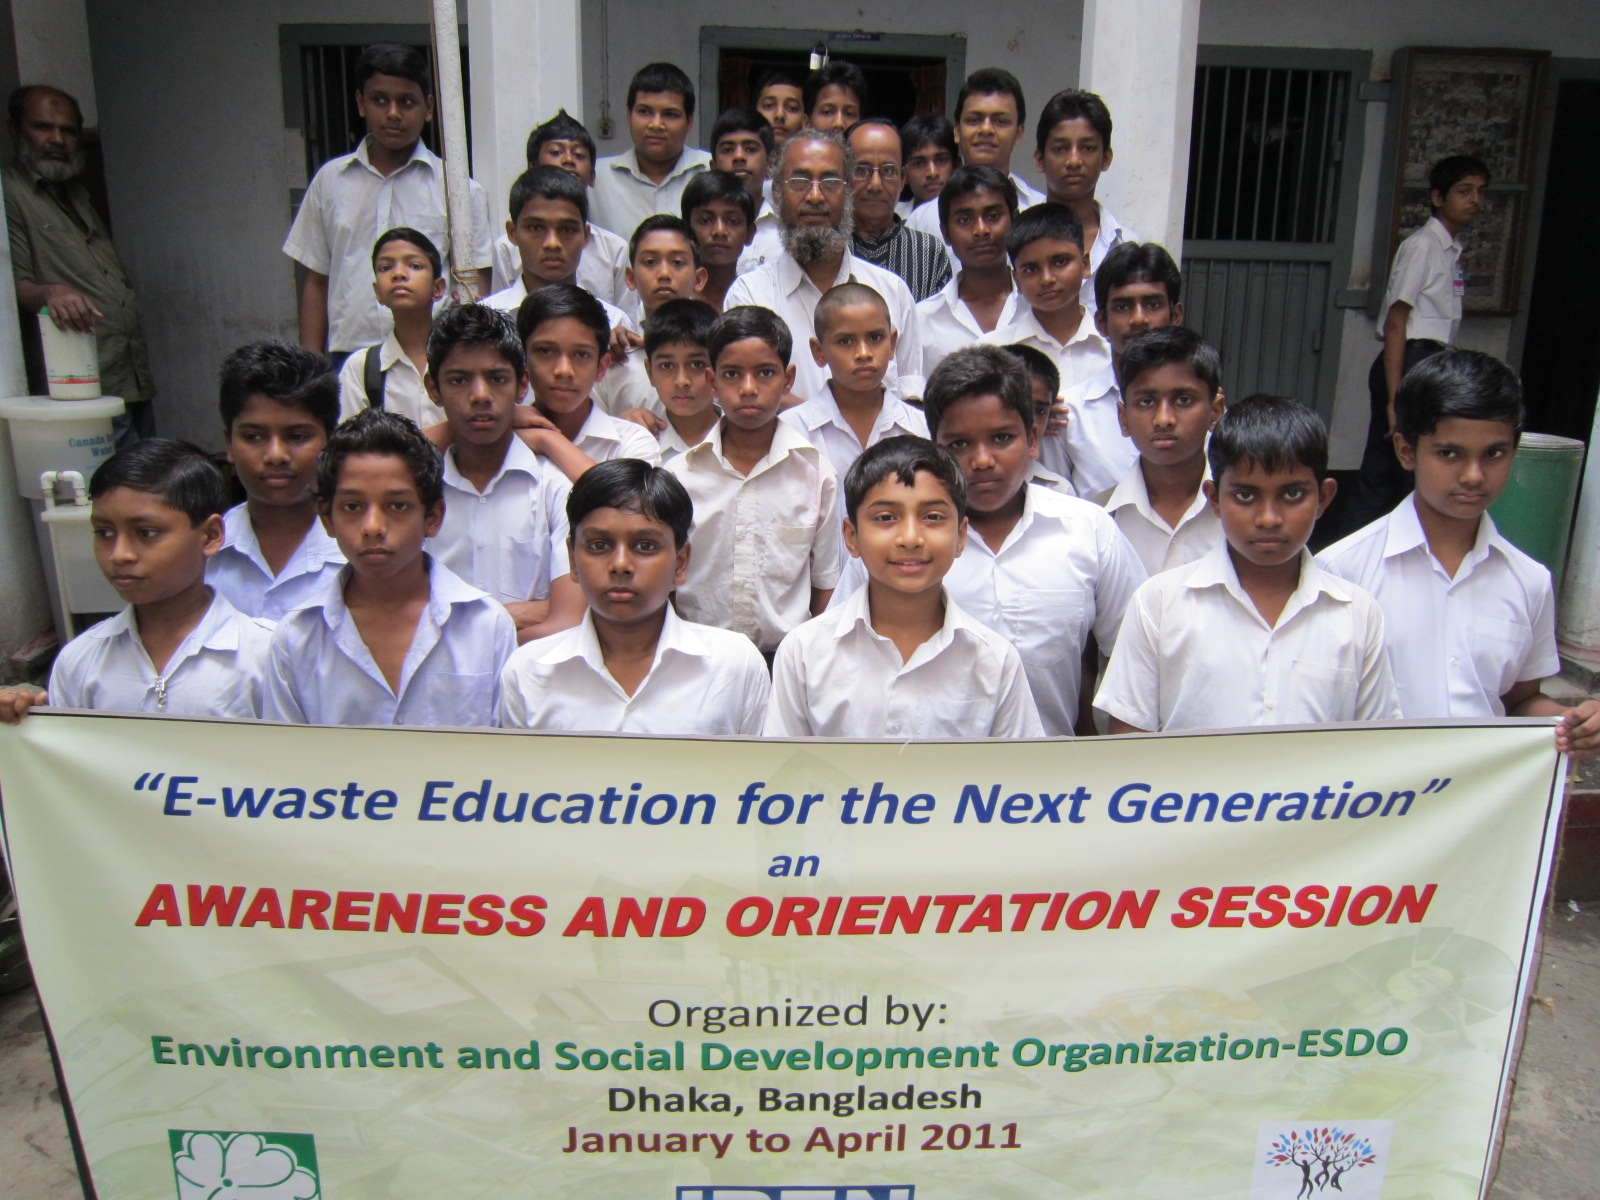 E-waste ISIP activity carried out by ESDO in Bangladesh